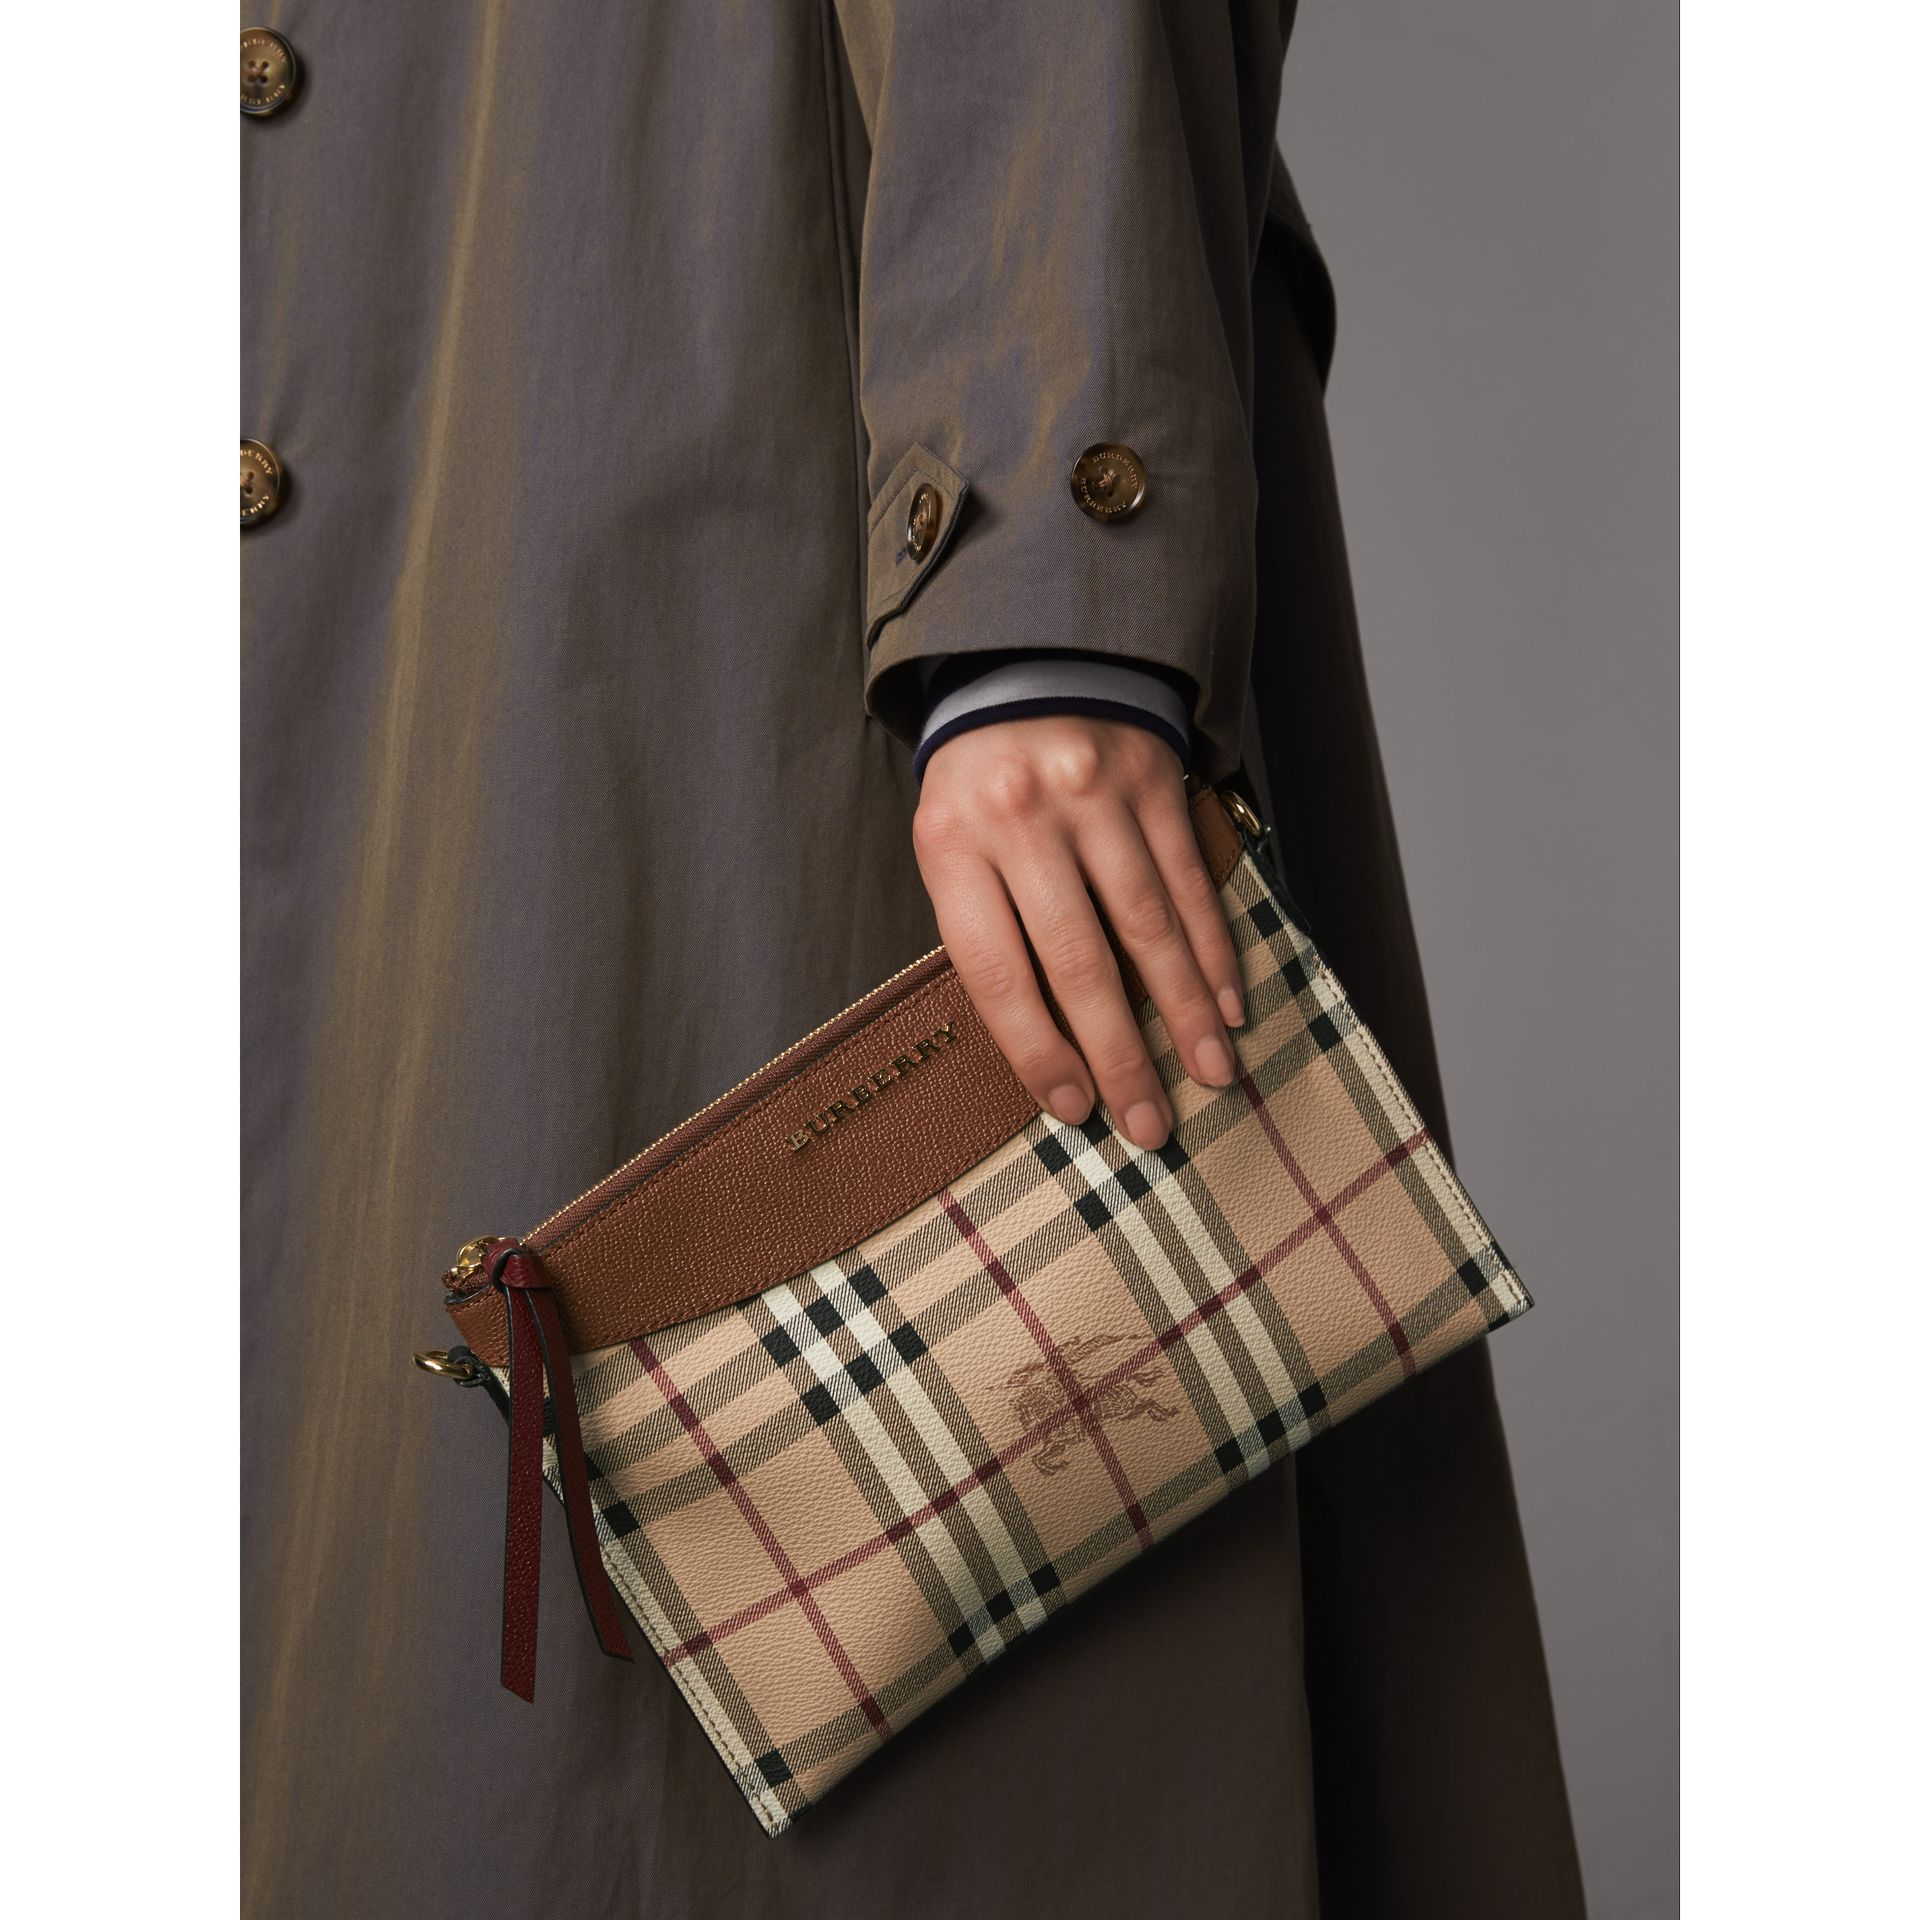 Haymarket Check and Two-tone Leather Clutch Bag in Bright Toffee/ Multicolour - Women | Burberry Australia - gallery image 4